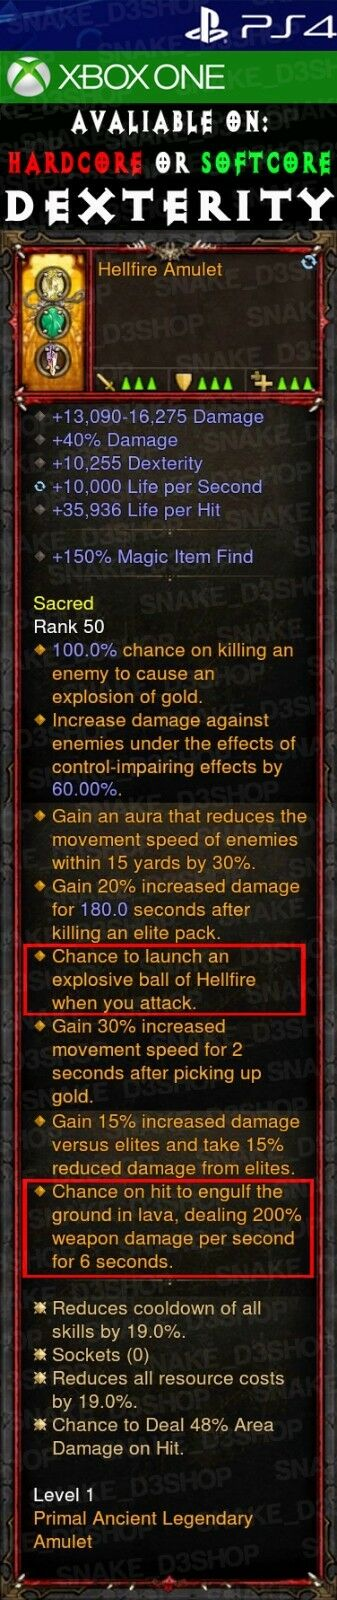 Diablo 3 PS4 - Xbox One - PRIMAL Modded Amulet - Hellfire With Ground in Lava